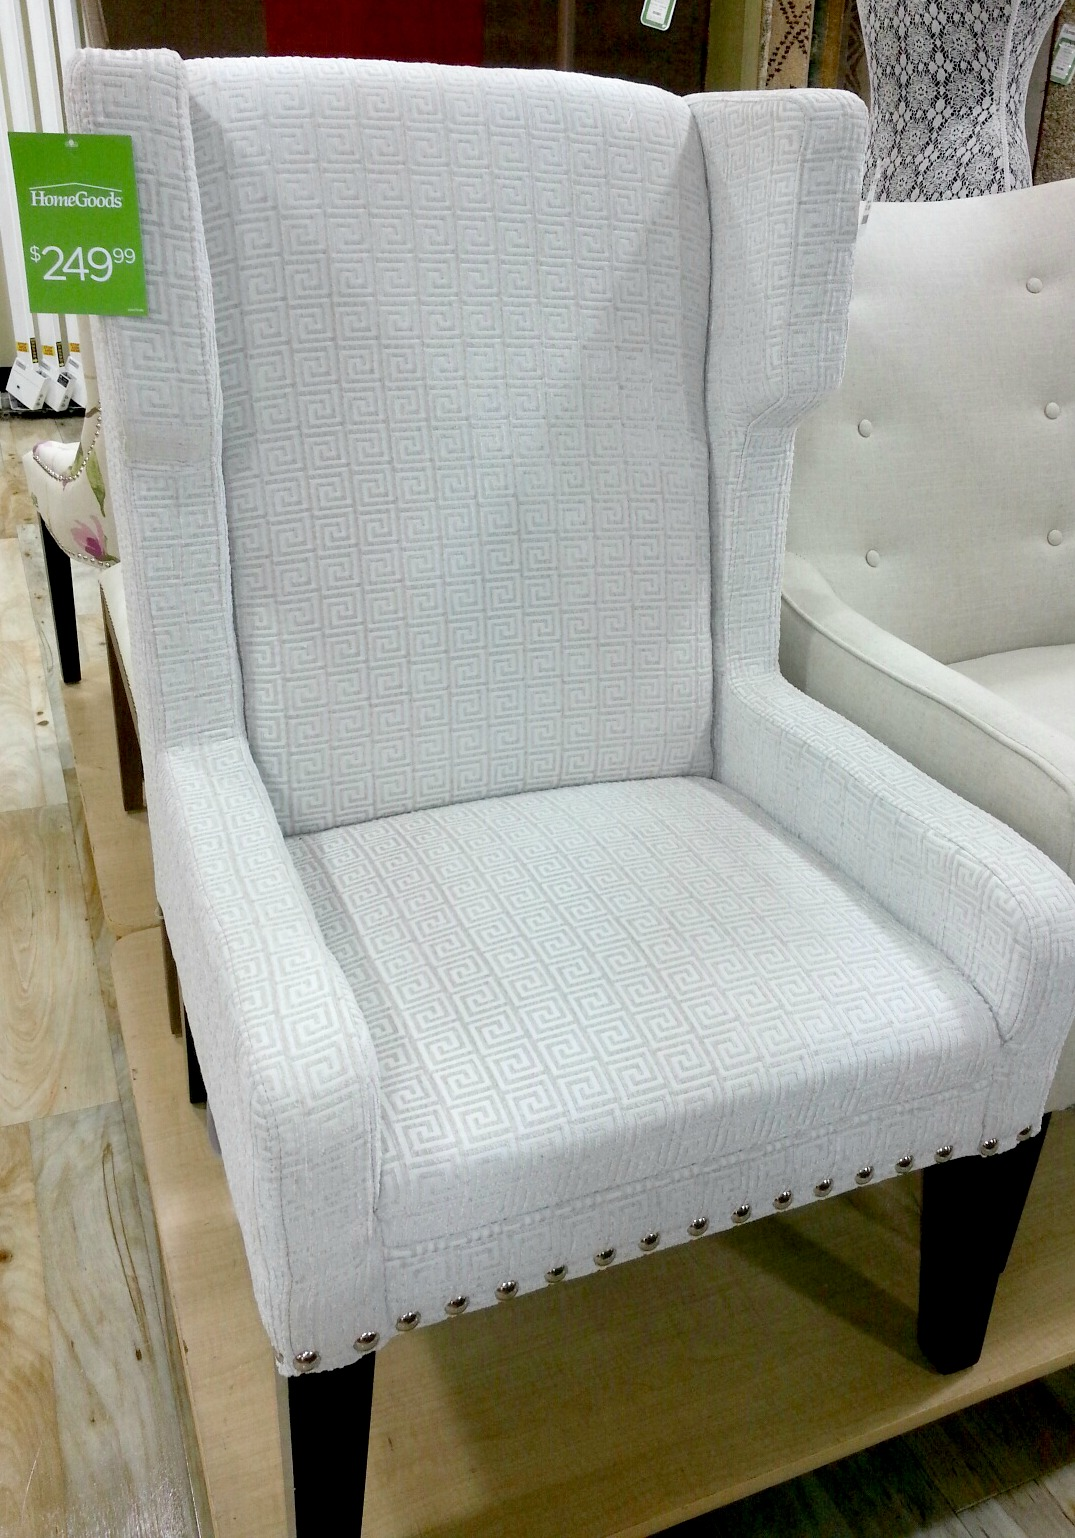 Nicole Miller Chairs Swivel Accent Chair With Arms Wallpaper At Home Goods